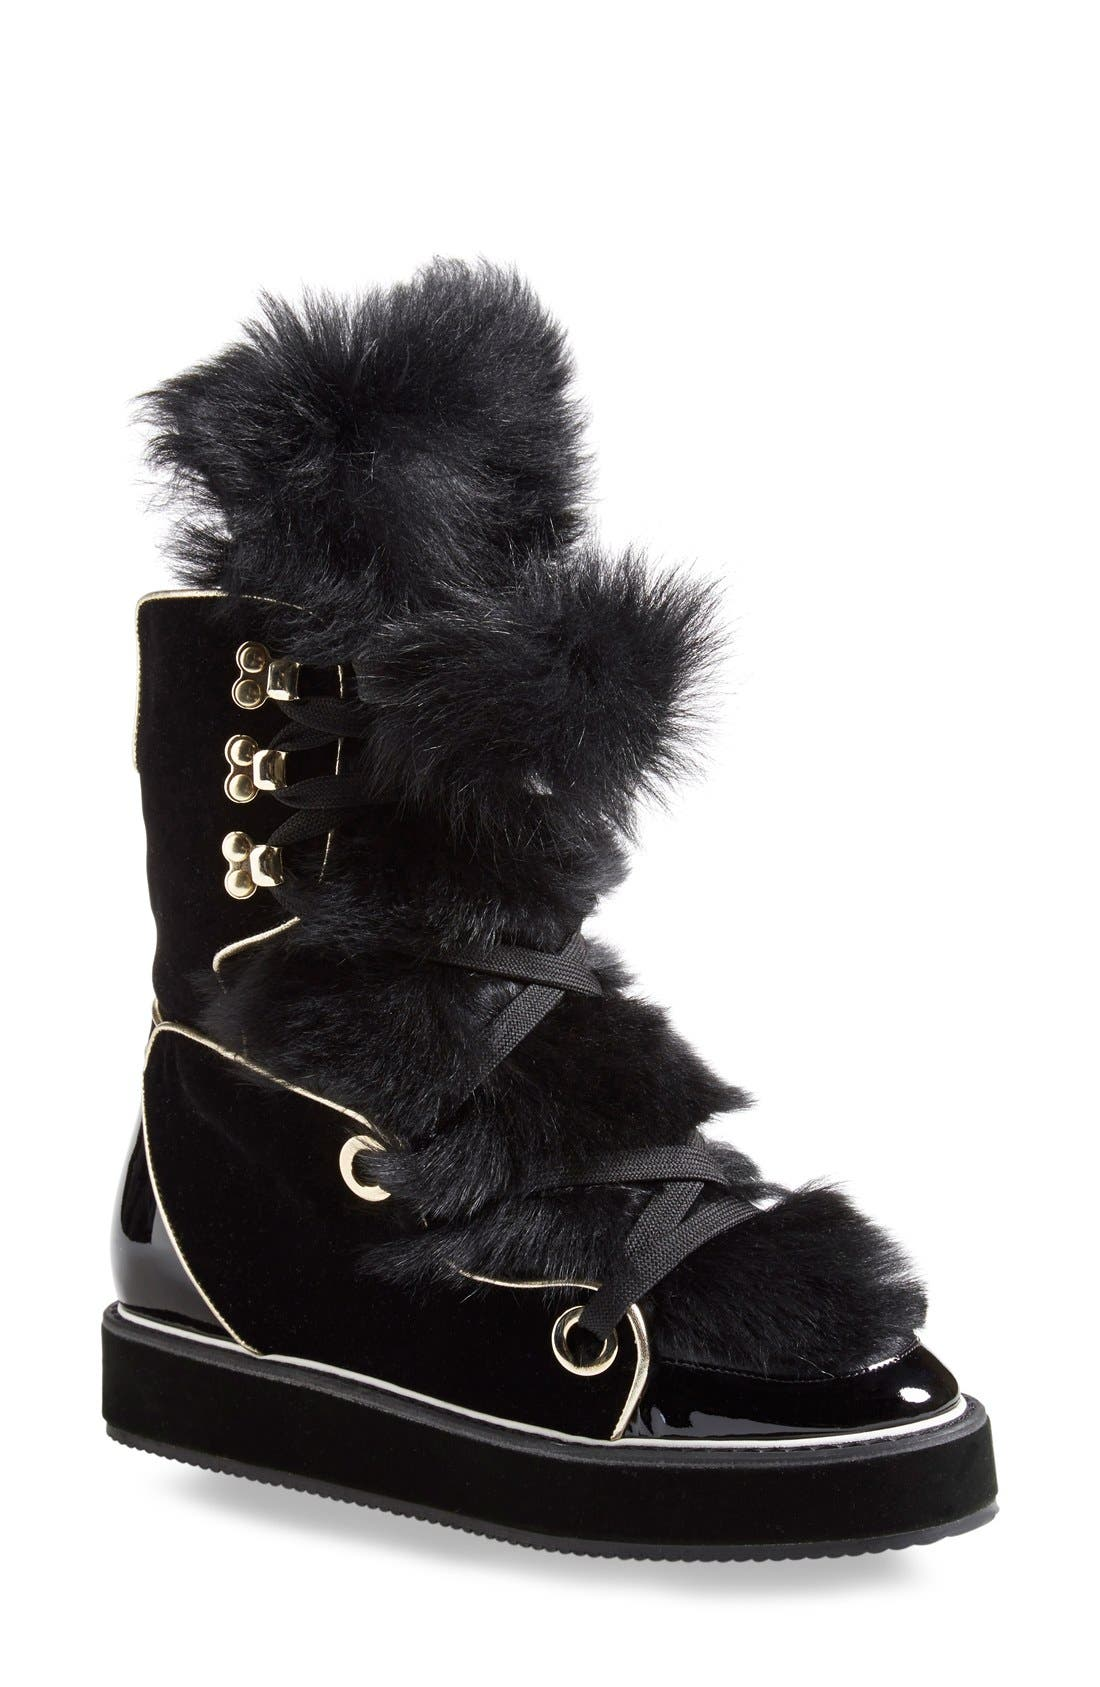 Alternate Image 1 Selected - Nicholas Kirkwood 'Polly Neige' Snow Boot (Women)